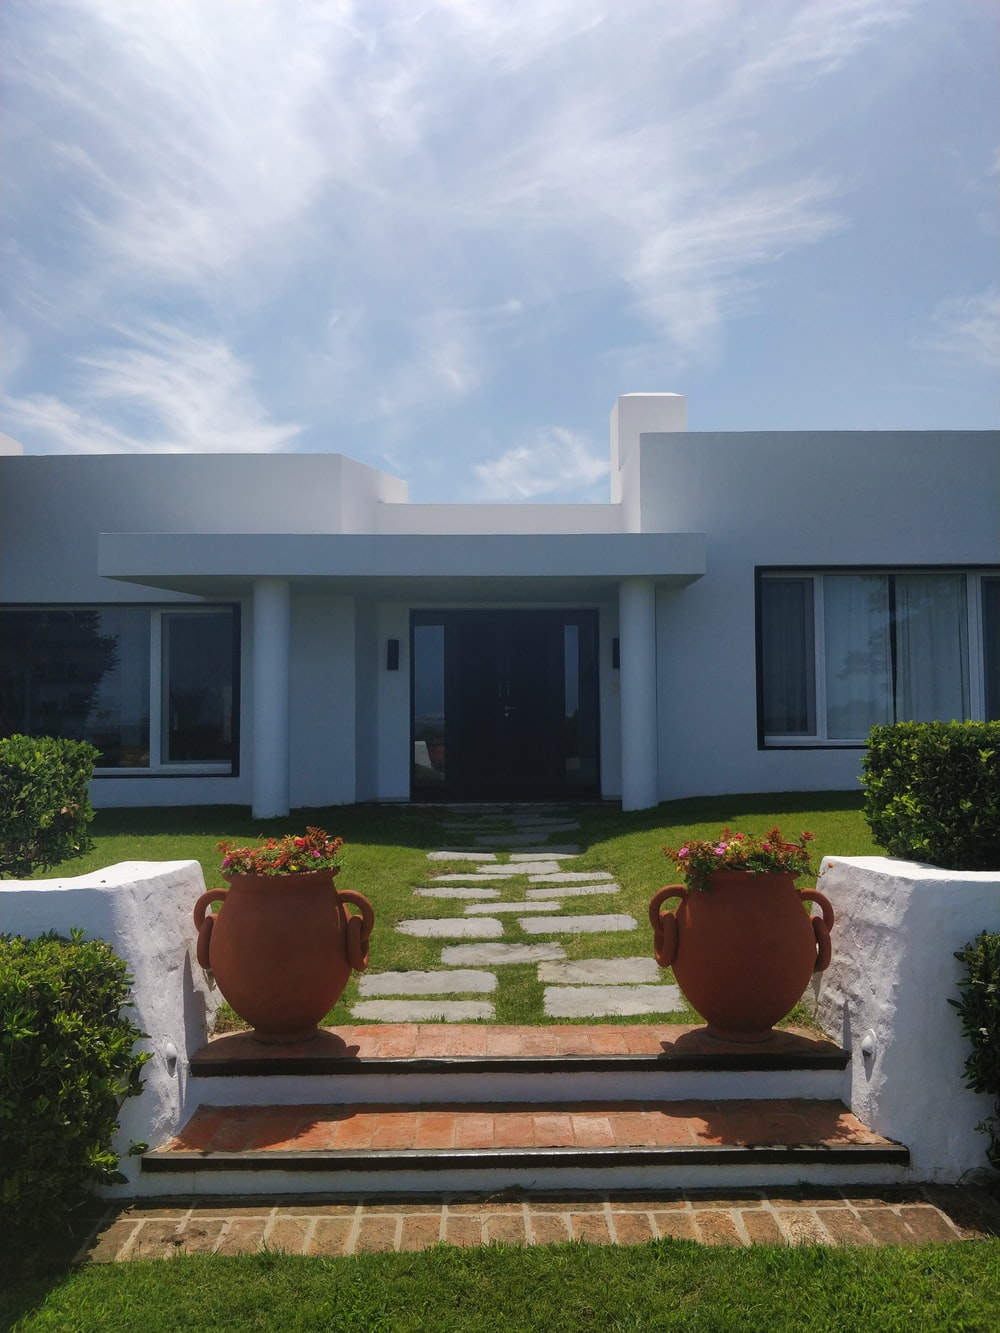 white concrete house under white clouds during daytime